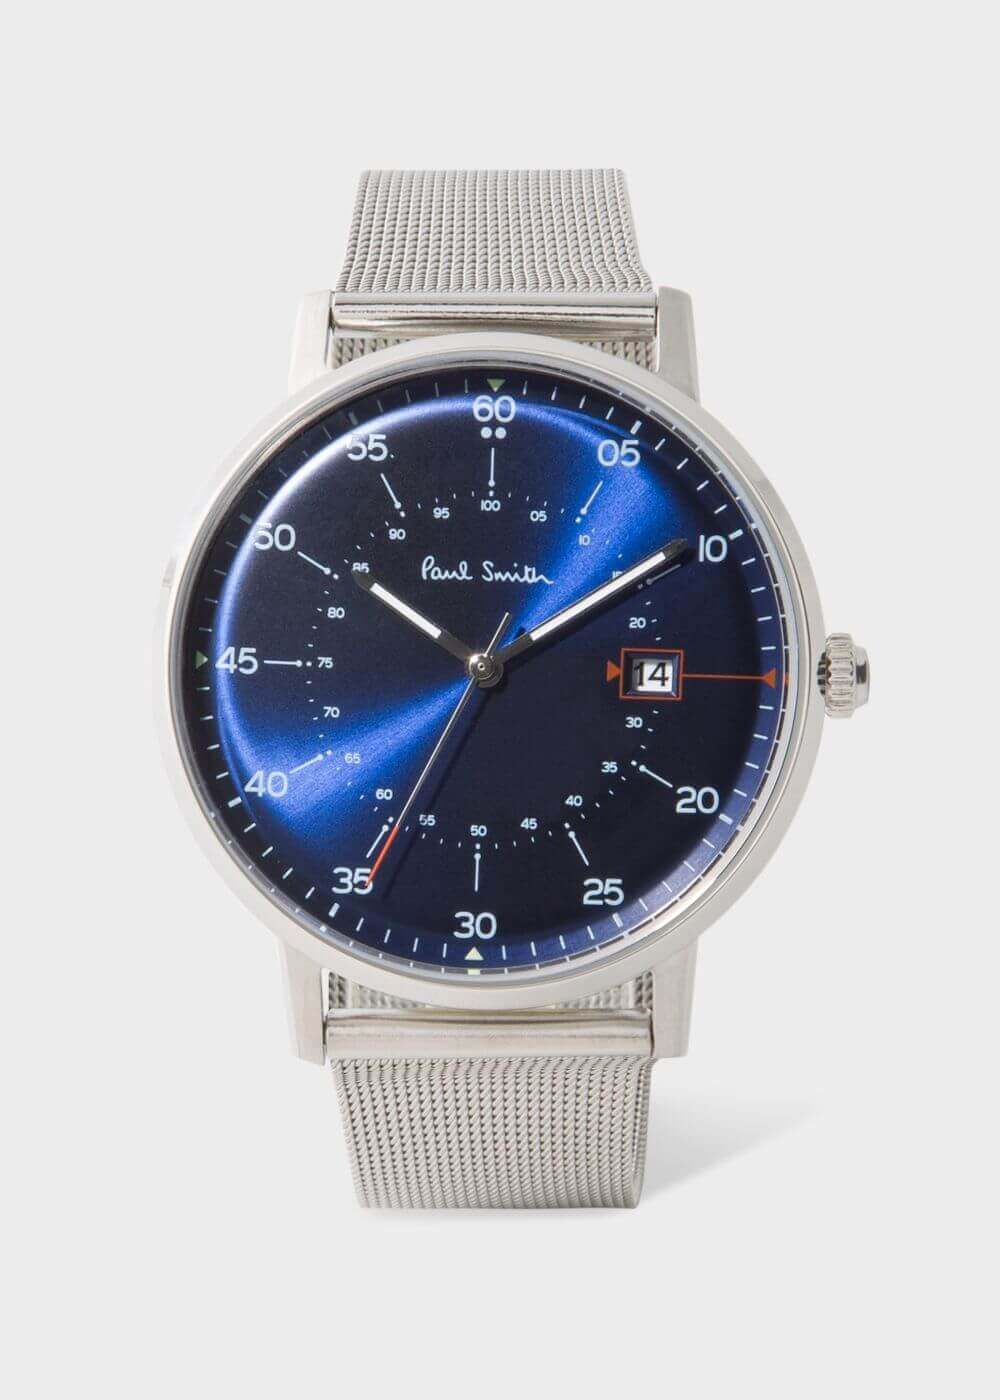 Paul Smith Watch - Classy Father's Day Gift